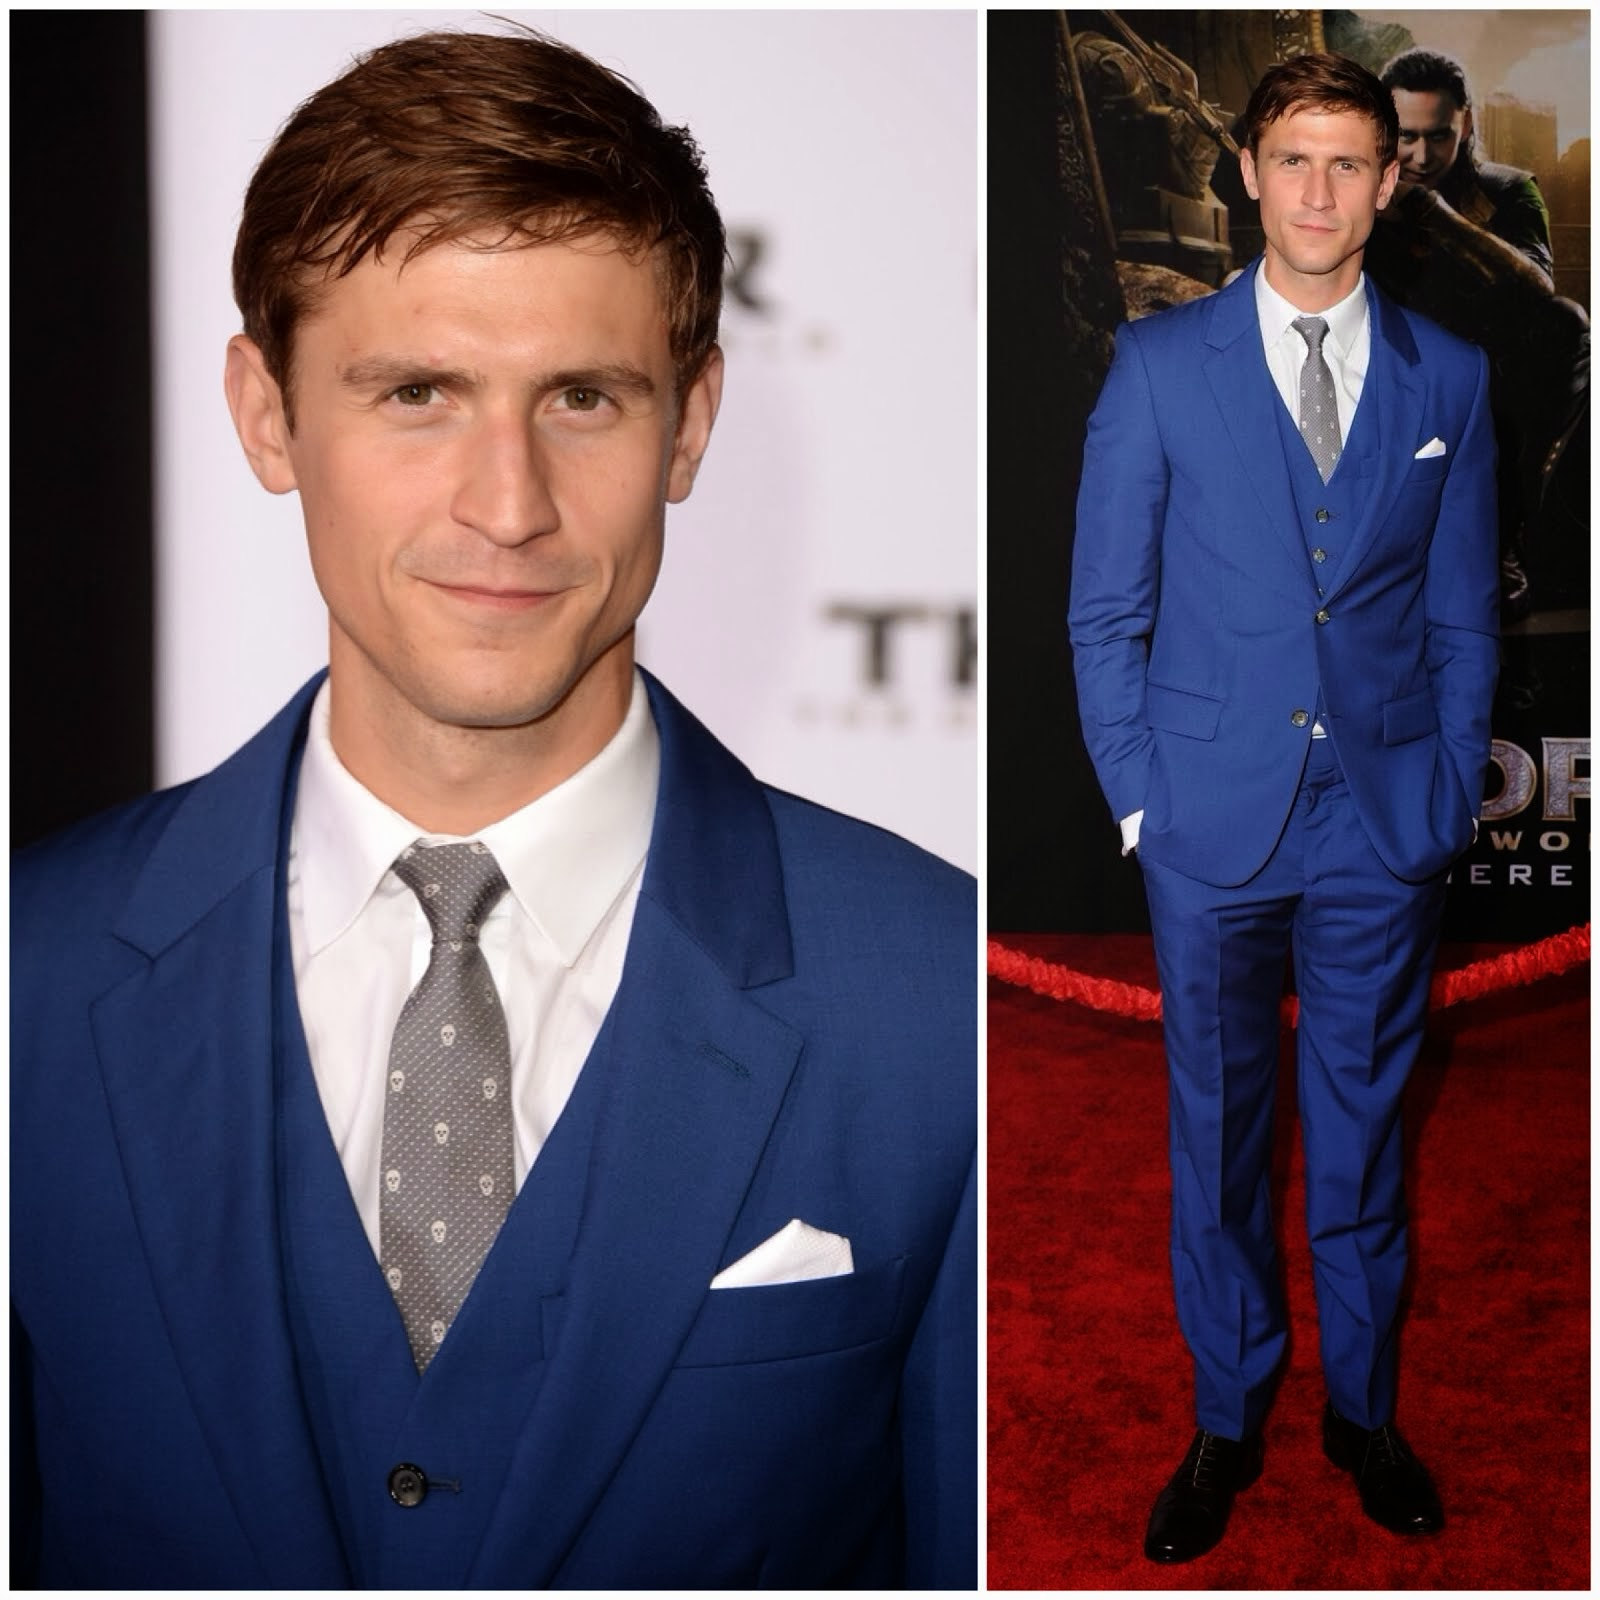 00O00 Menswear Blog: Jonathan Howard in Alexander McQueen - 'Thor: The Dark World' Hollywood Premiere